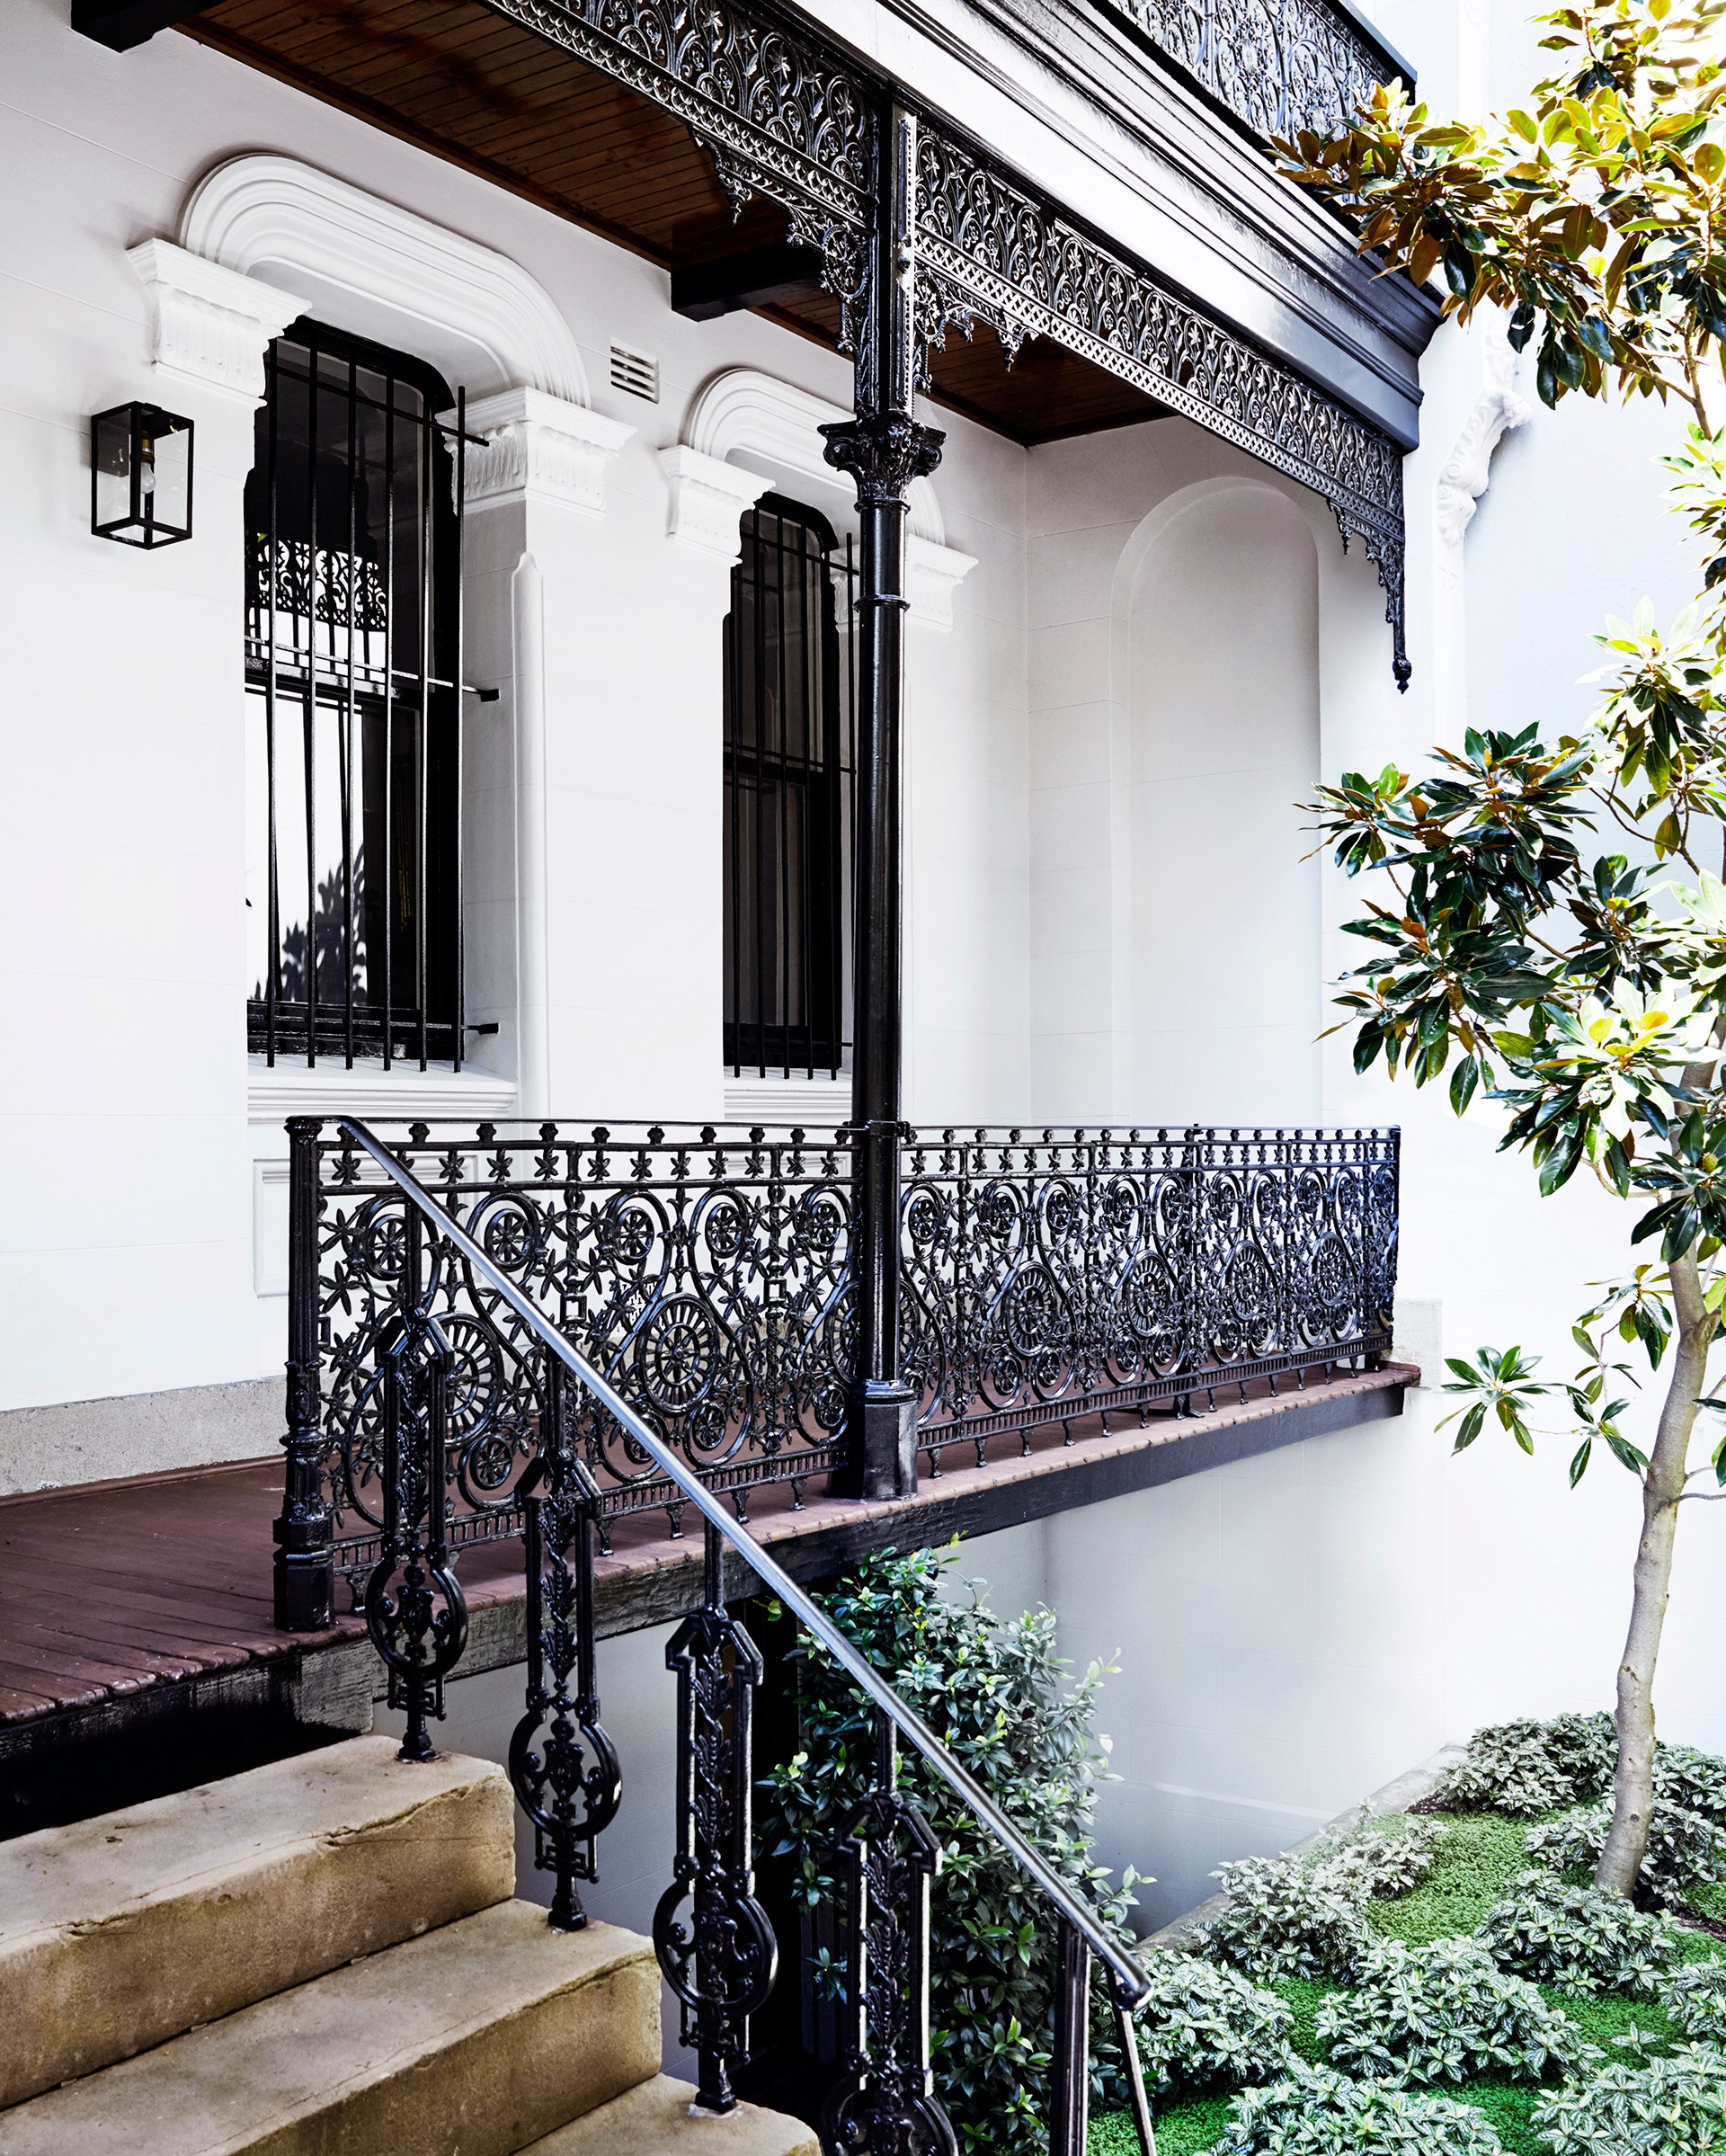 The grand proportions and preserved period detailing of this [historical Sydney terrace](http://www.homestolove.com.au/luxury-home-tour-historical-sydney-terrace-3559) sealed the deal for health professional owner Peter Stewart, who tackled the renovation largely on his own, with the help of a draughtsperson and a heritage architect. Photo: David Wheeler / Belle